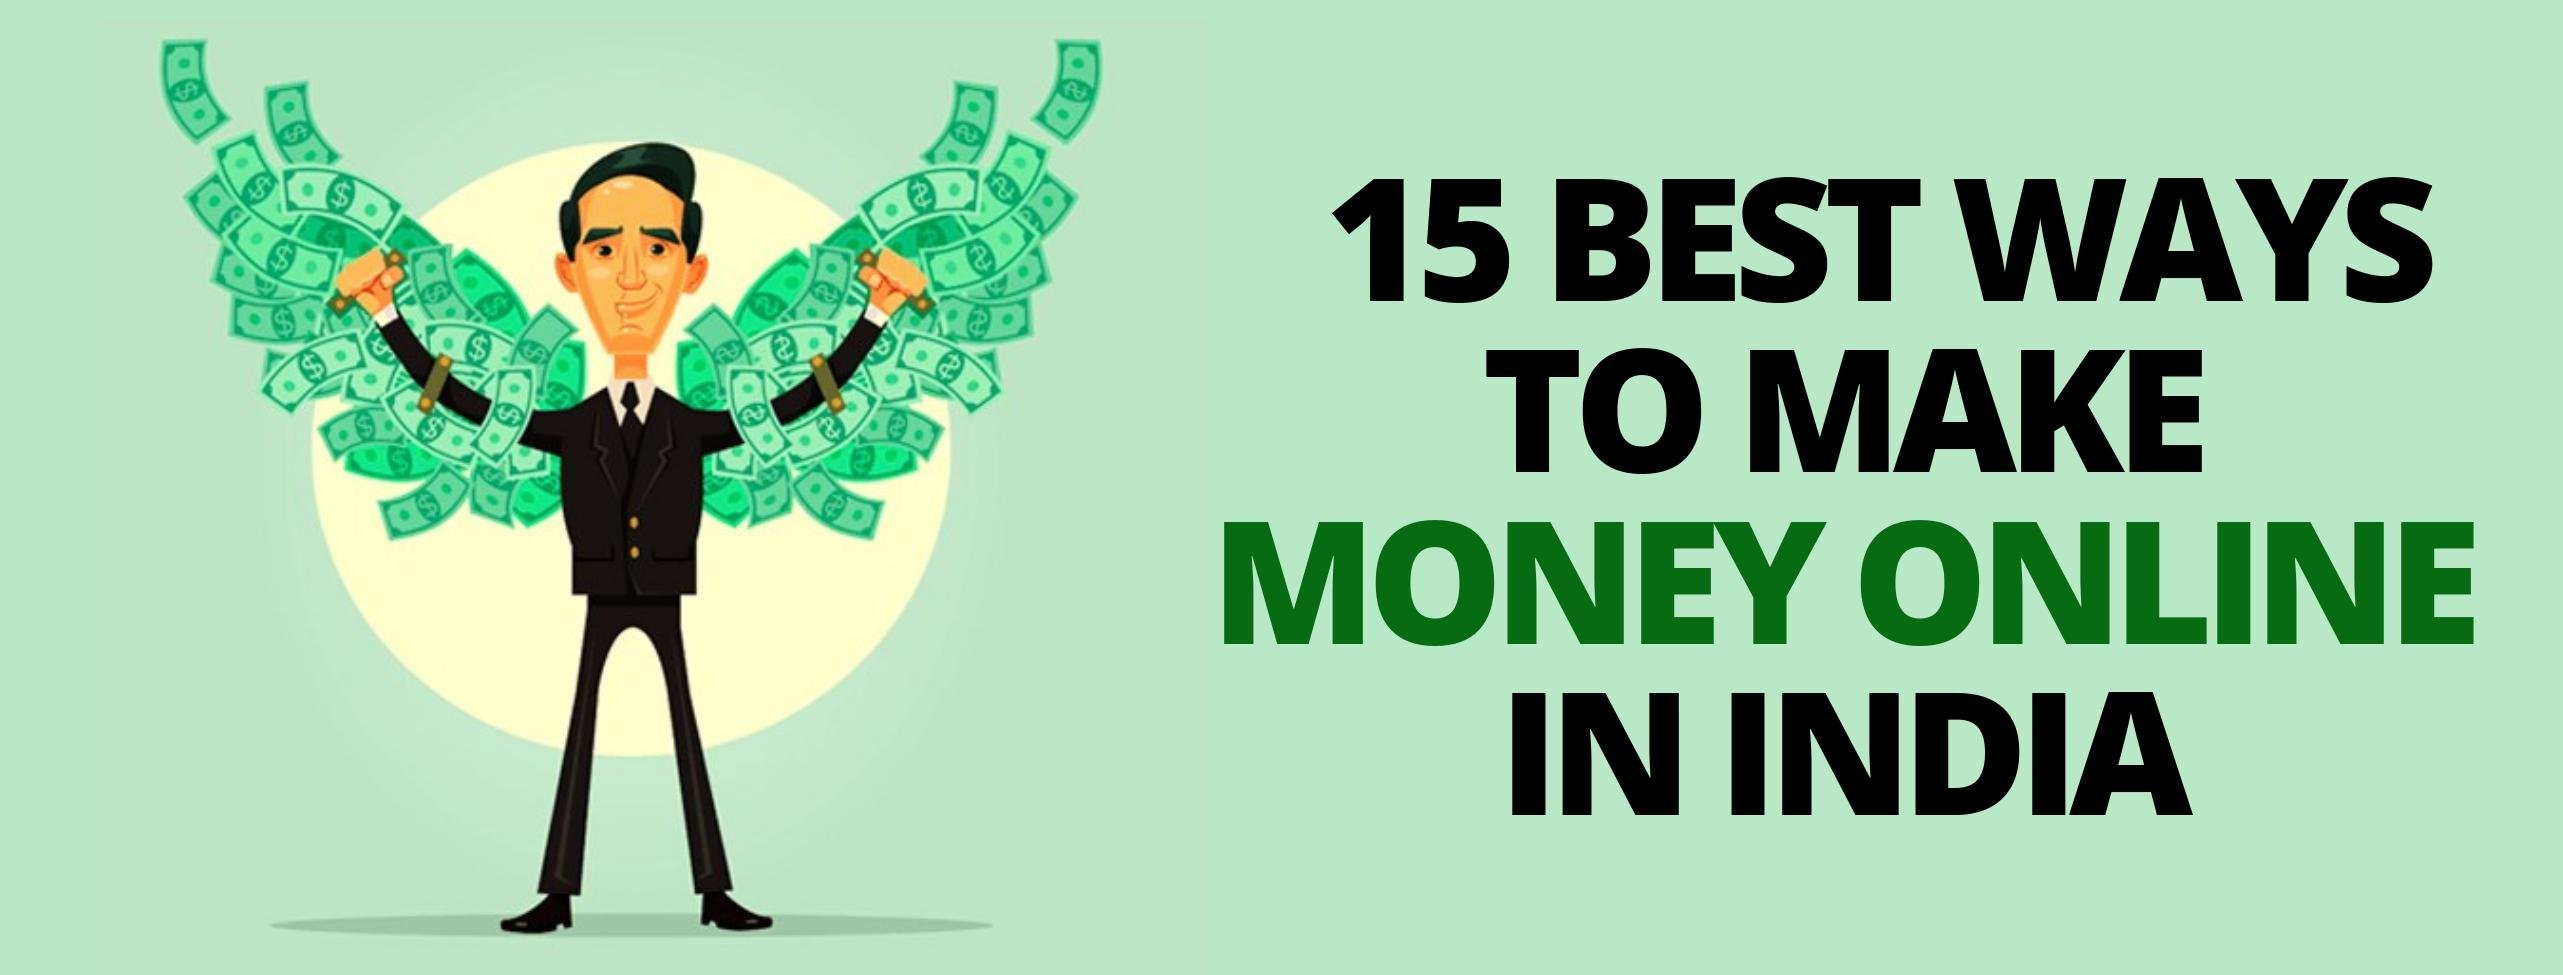 Ways to make money online in India